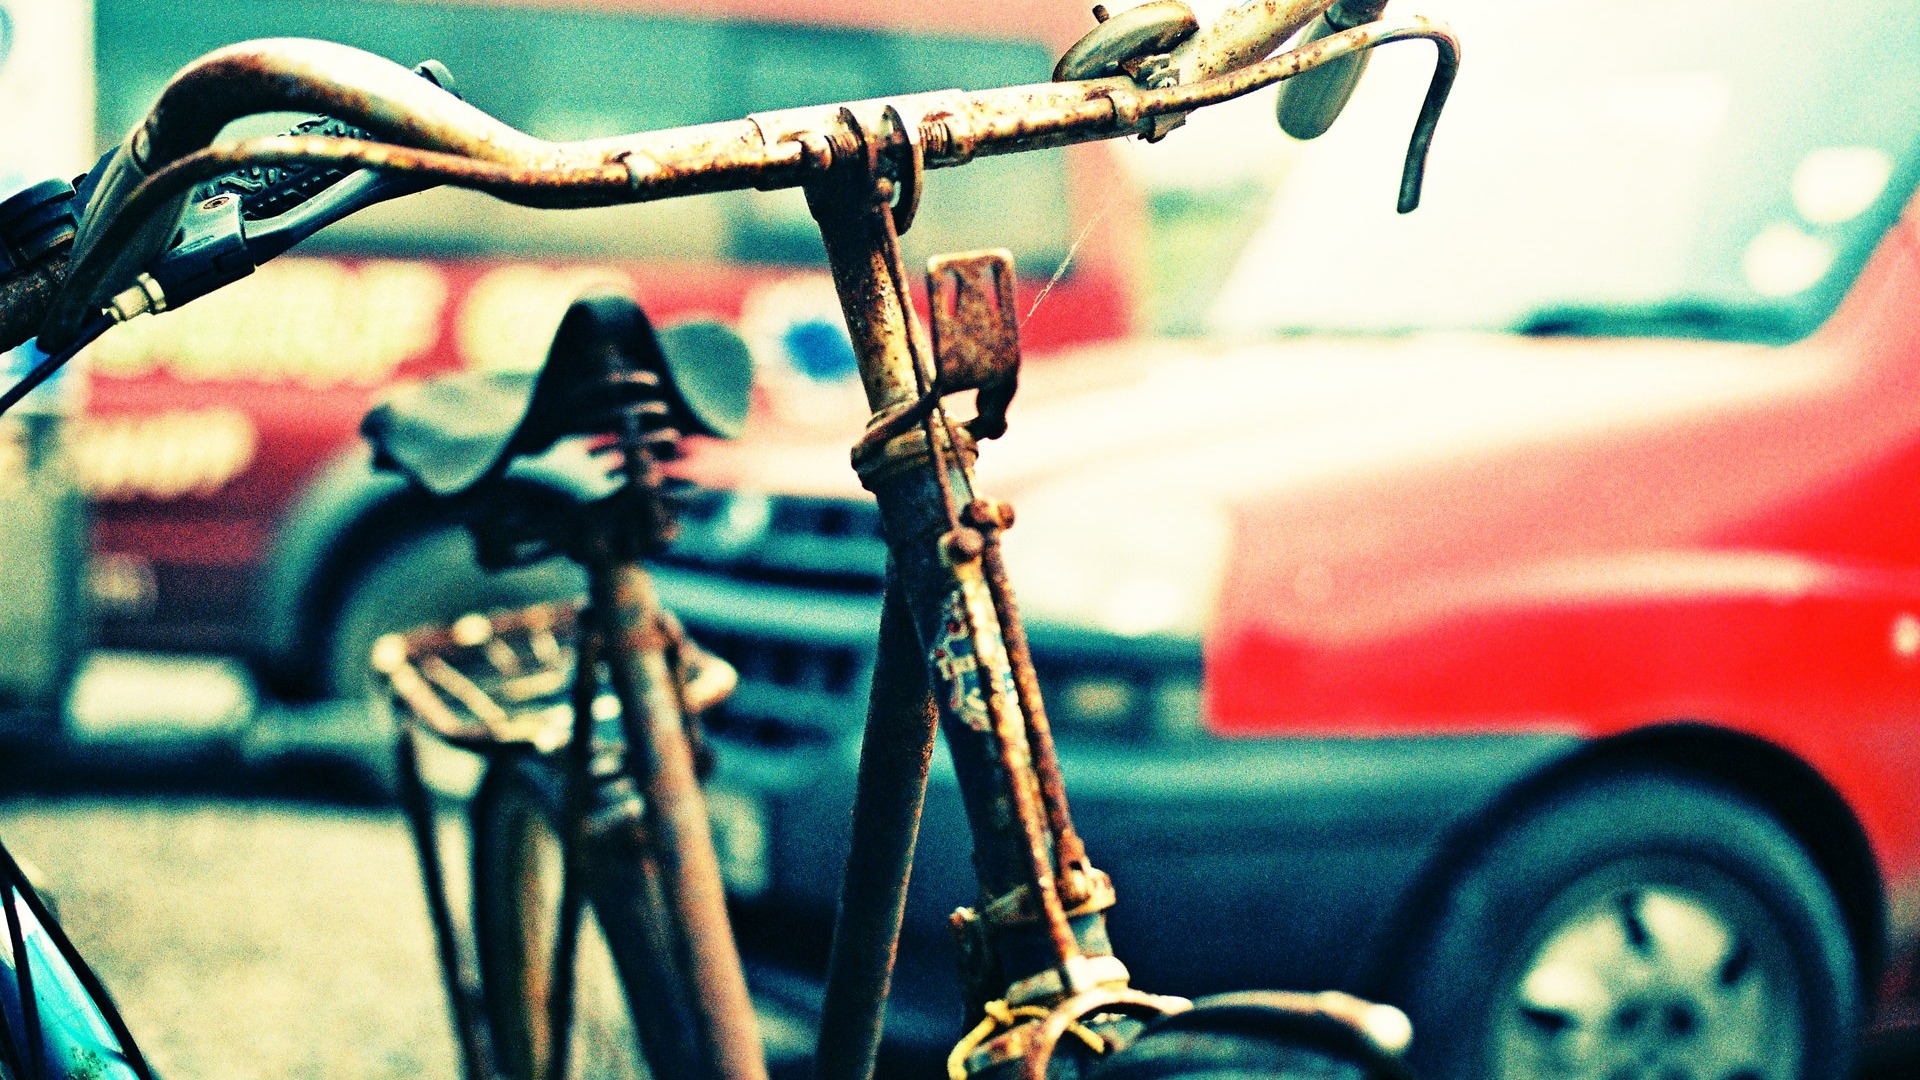 7034640-old-bicycle